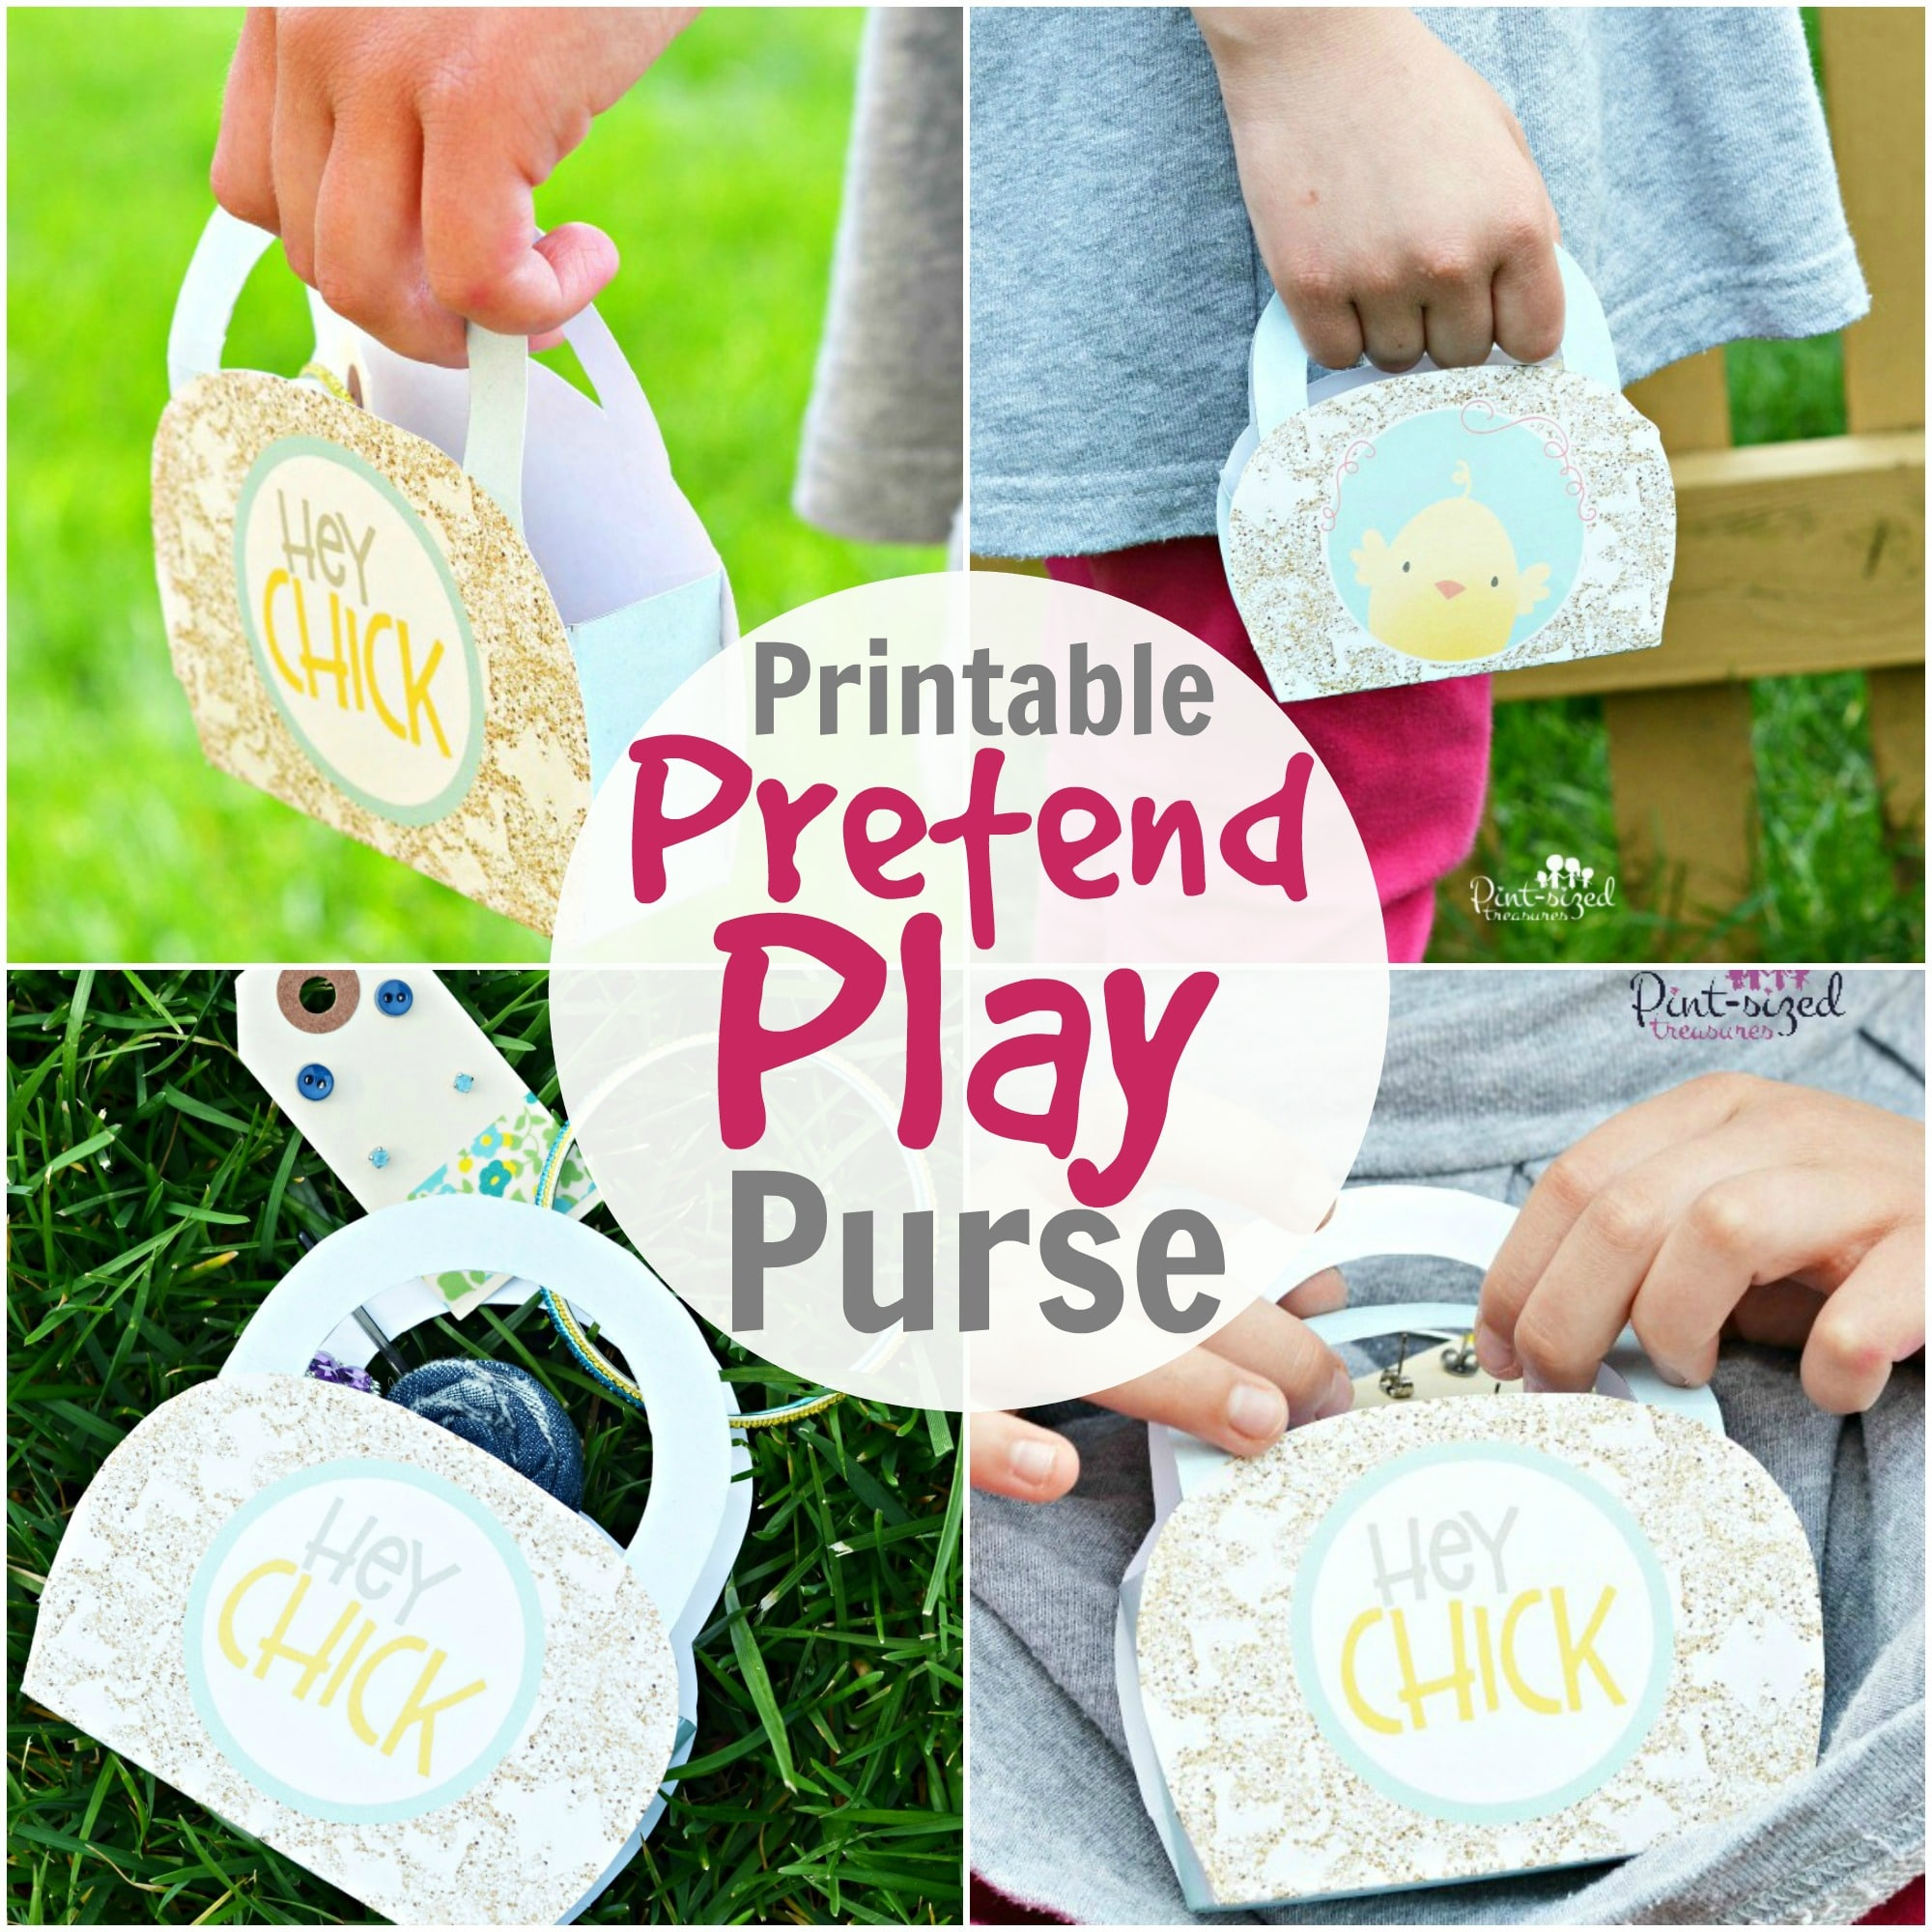 hey chic printable purse